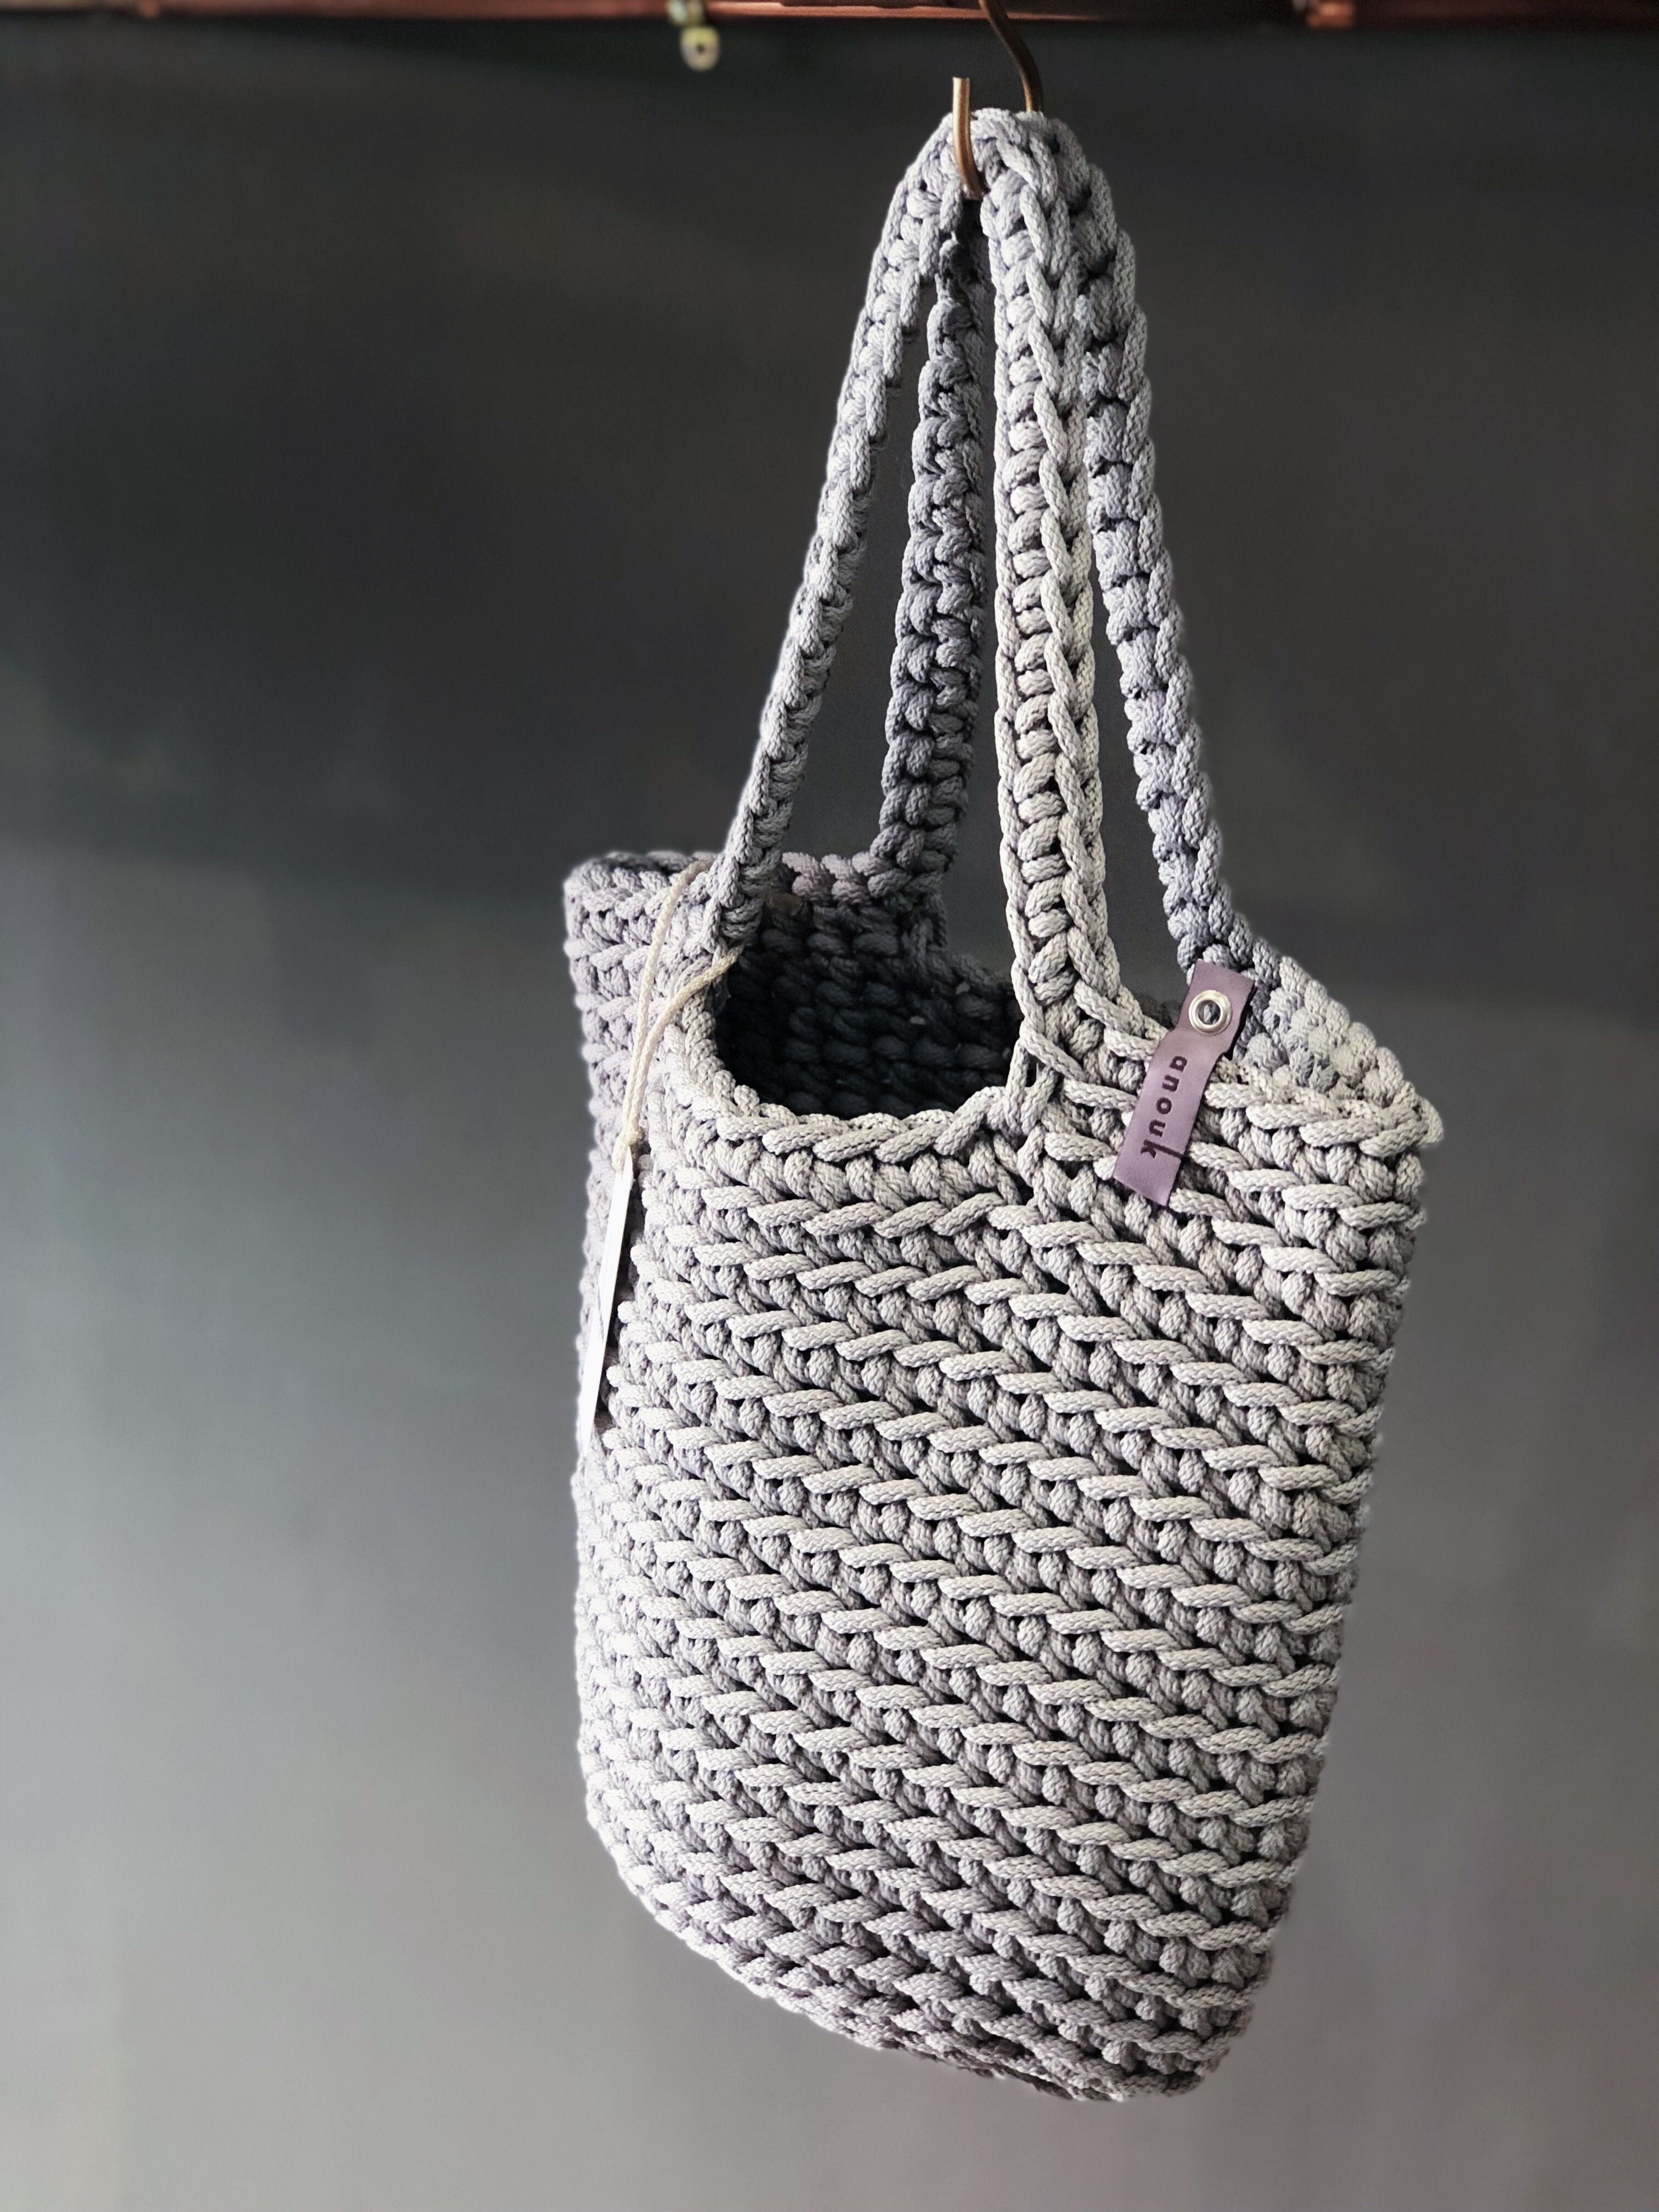 handmade crochet purse with recycled cotton crochet handbag in neutral cotton,READY TO SHIP Crochet natural tote